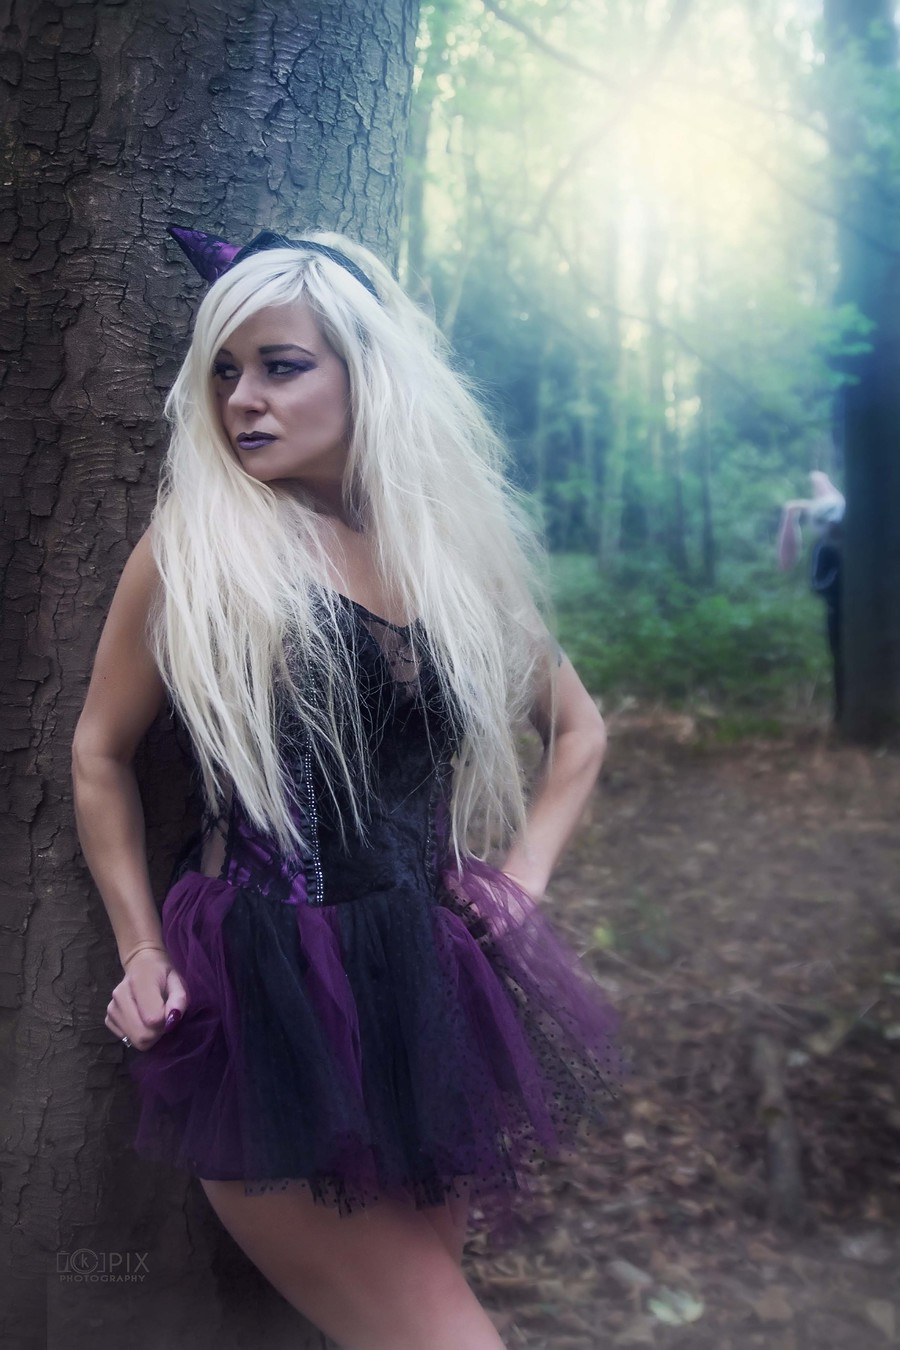 in the woods / Photography by kpix photography / koro, Model Valerie Haley / Uploaded 9th November 2016 @ 06:40 PM